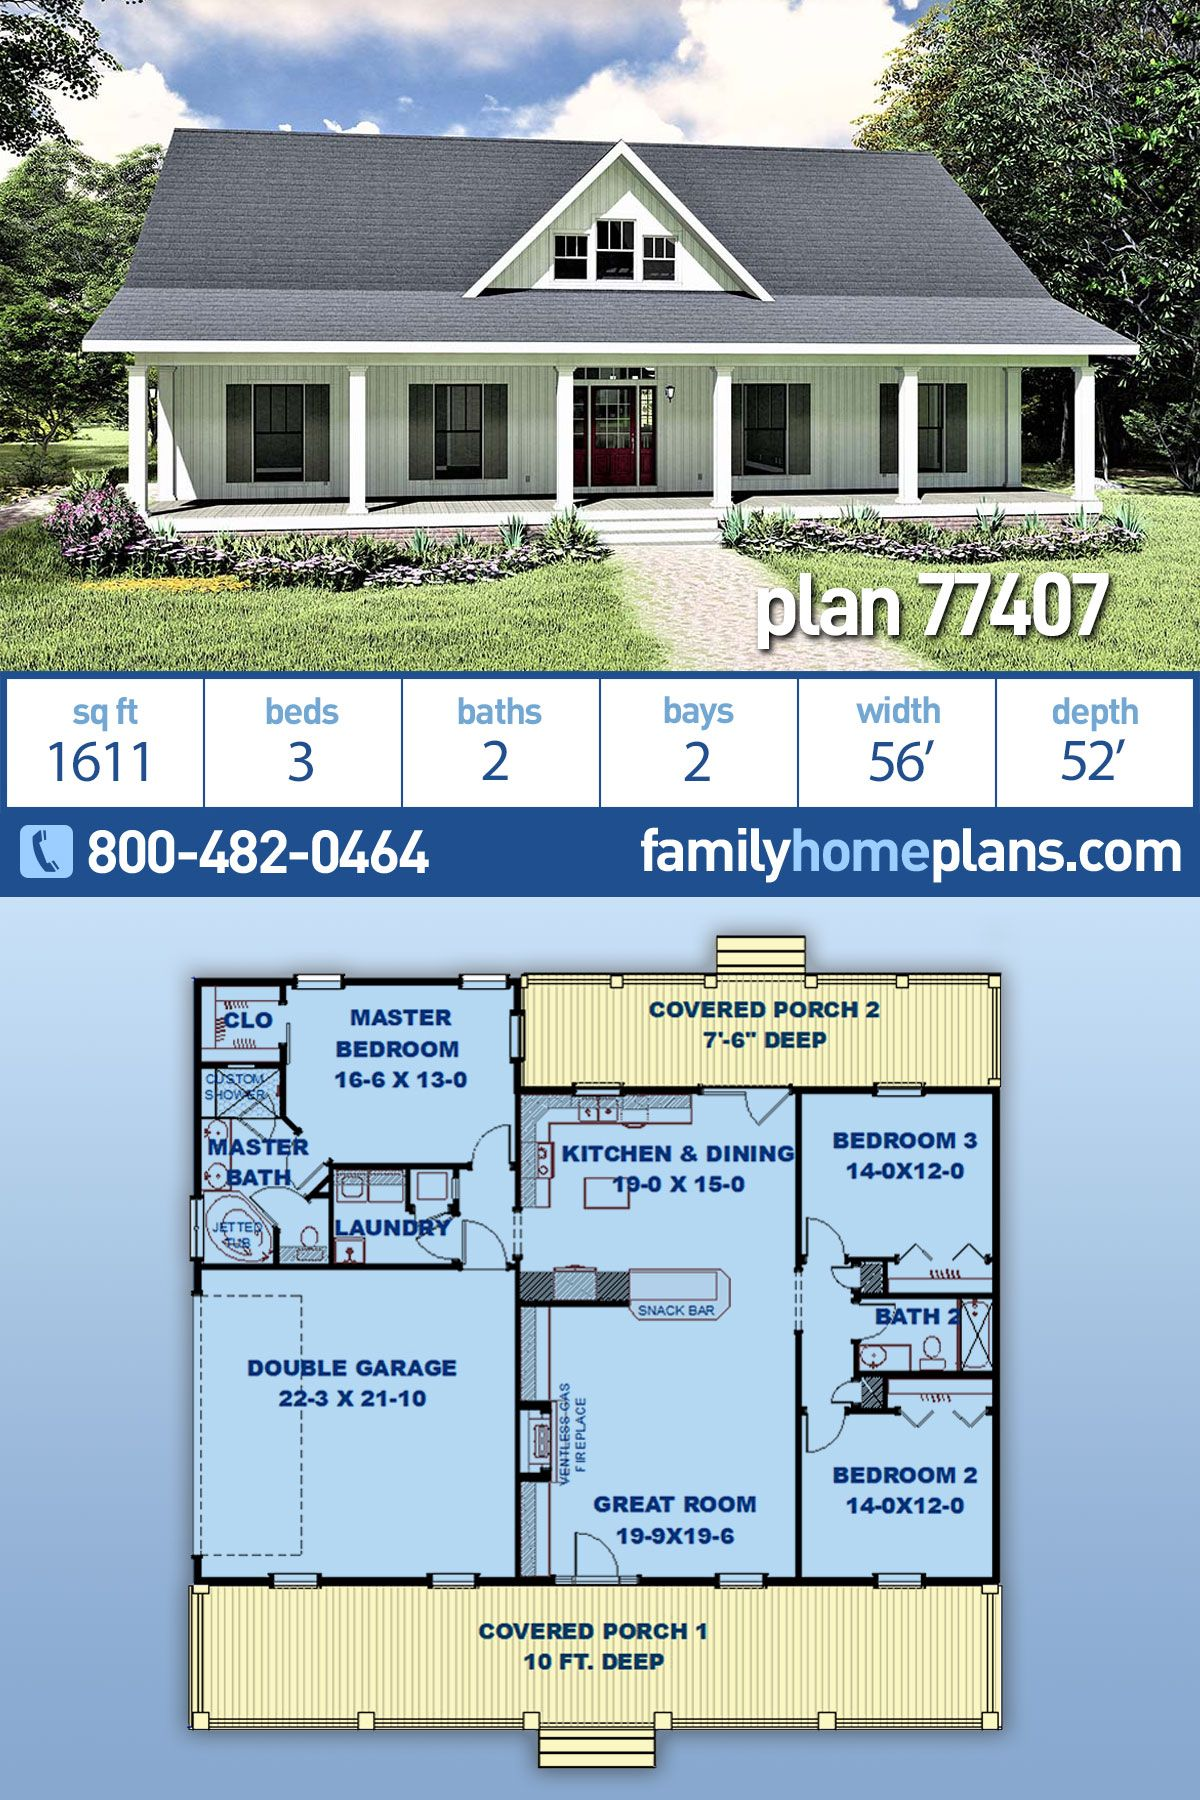 Southern Style House Plan 77407 With 3 Bed 2 Bath 2 Car Garage House Plans Farmhouse Southern House Plan Barn House Plans